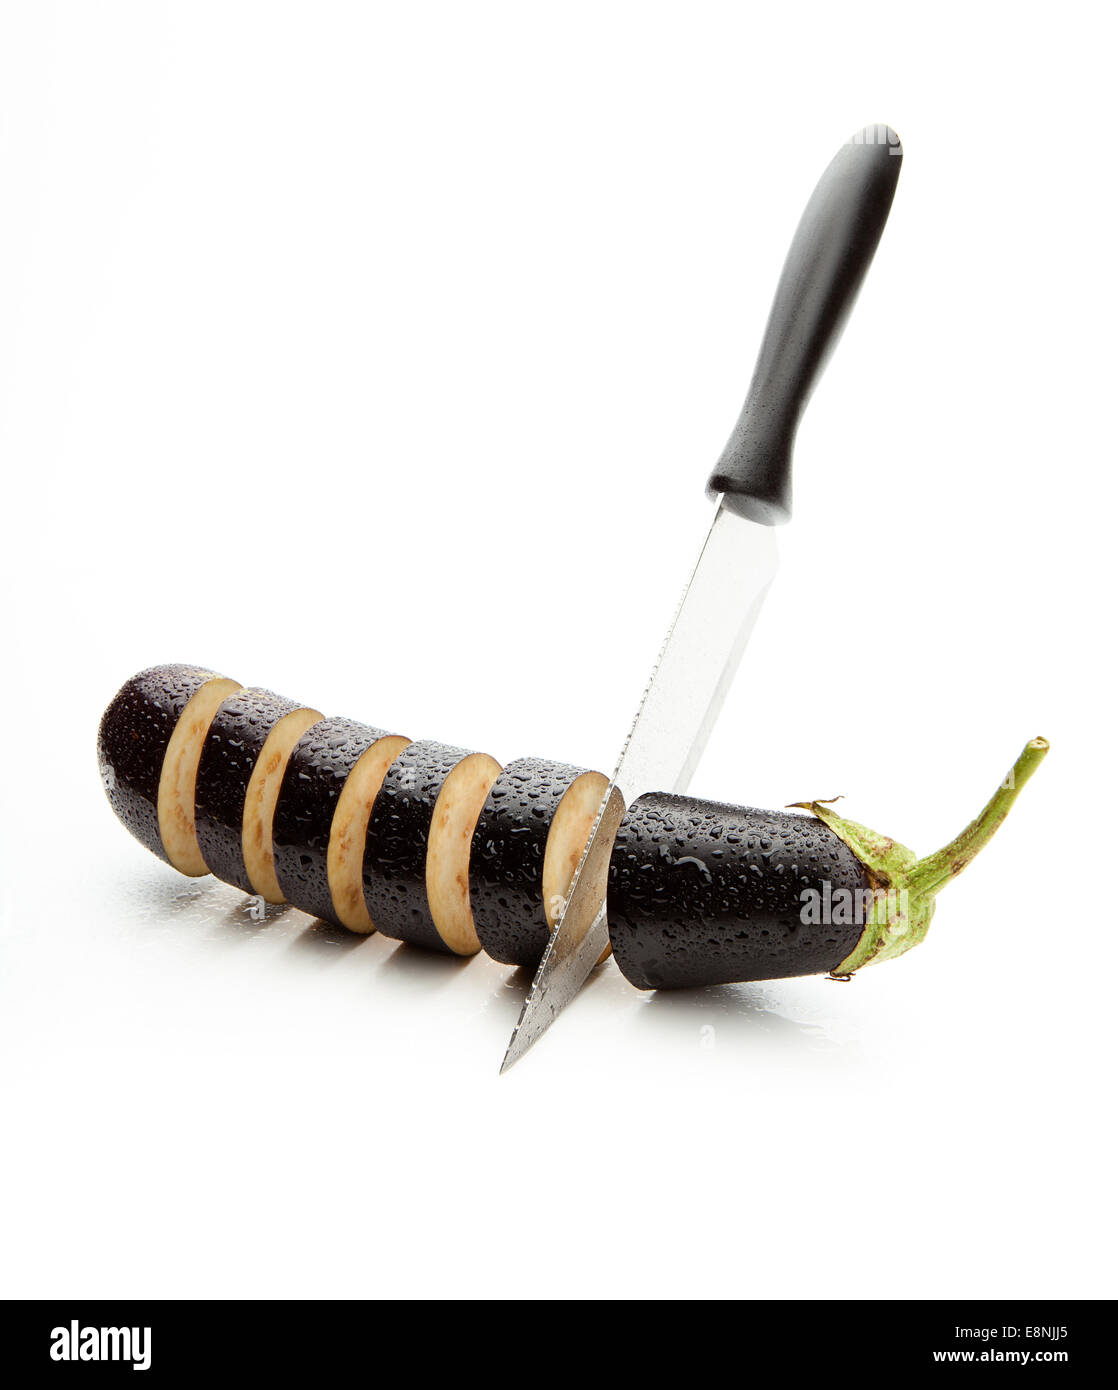 sharp knife, cut the wet eggplant into pieces on white background - Stock Image